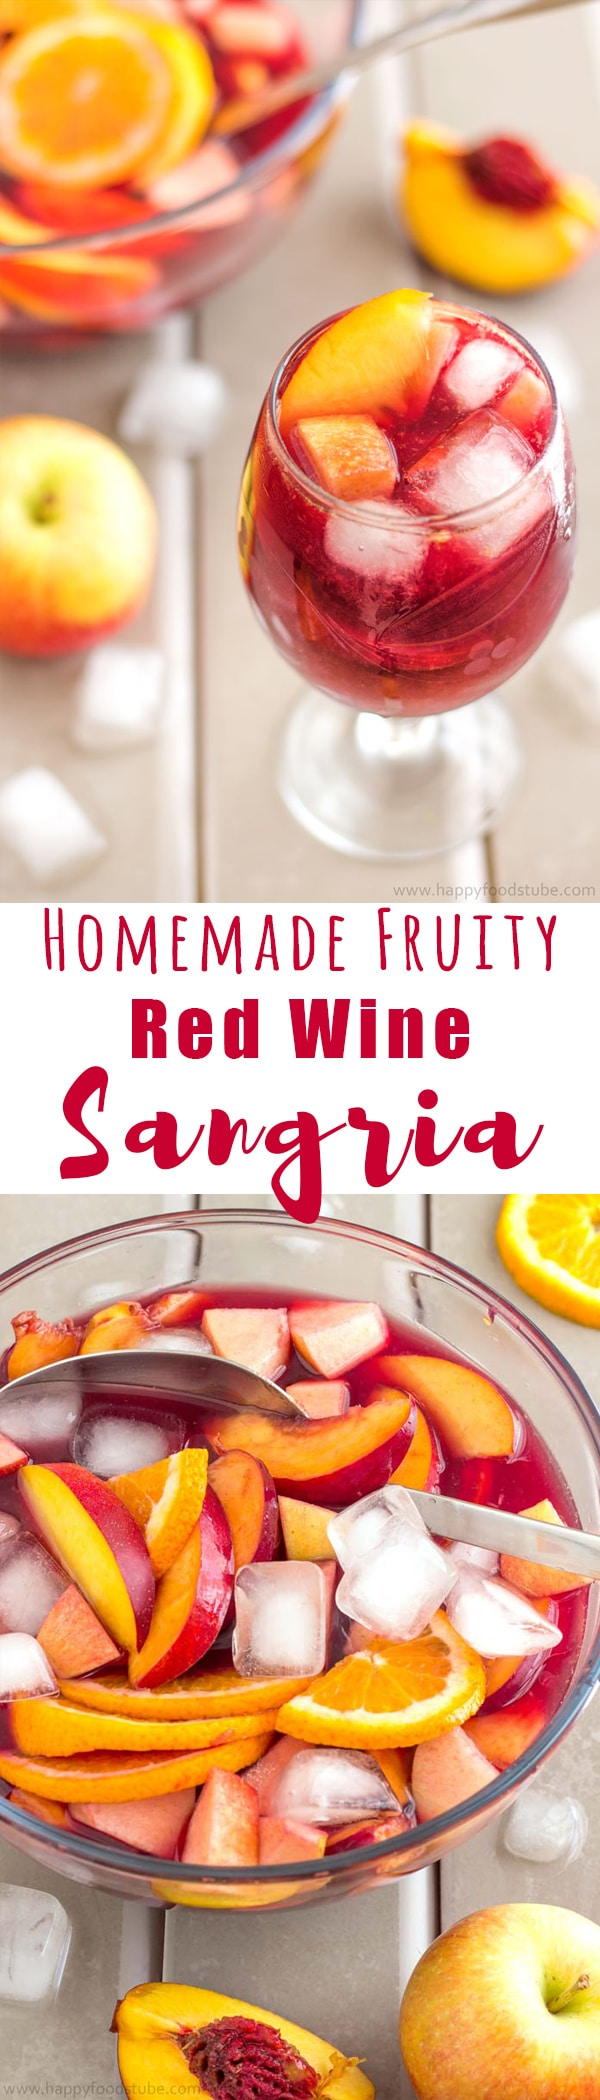 Homemade Fruity Red Wine Sangria. Super easy recipe. Nectarines, Apples, Oranges + Red Wine and Juice | happyfoodstube.com